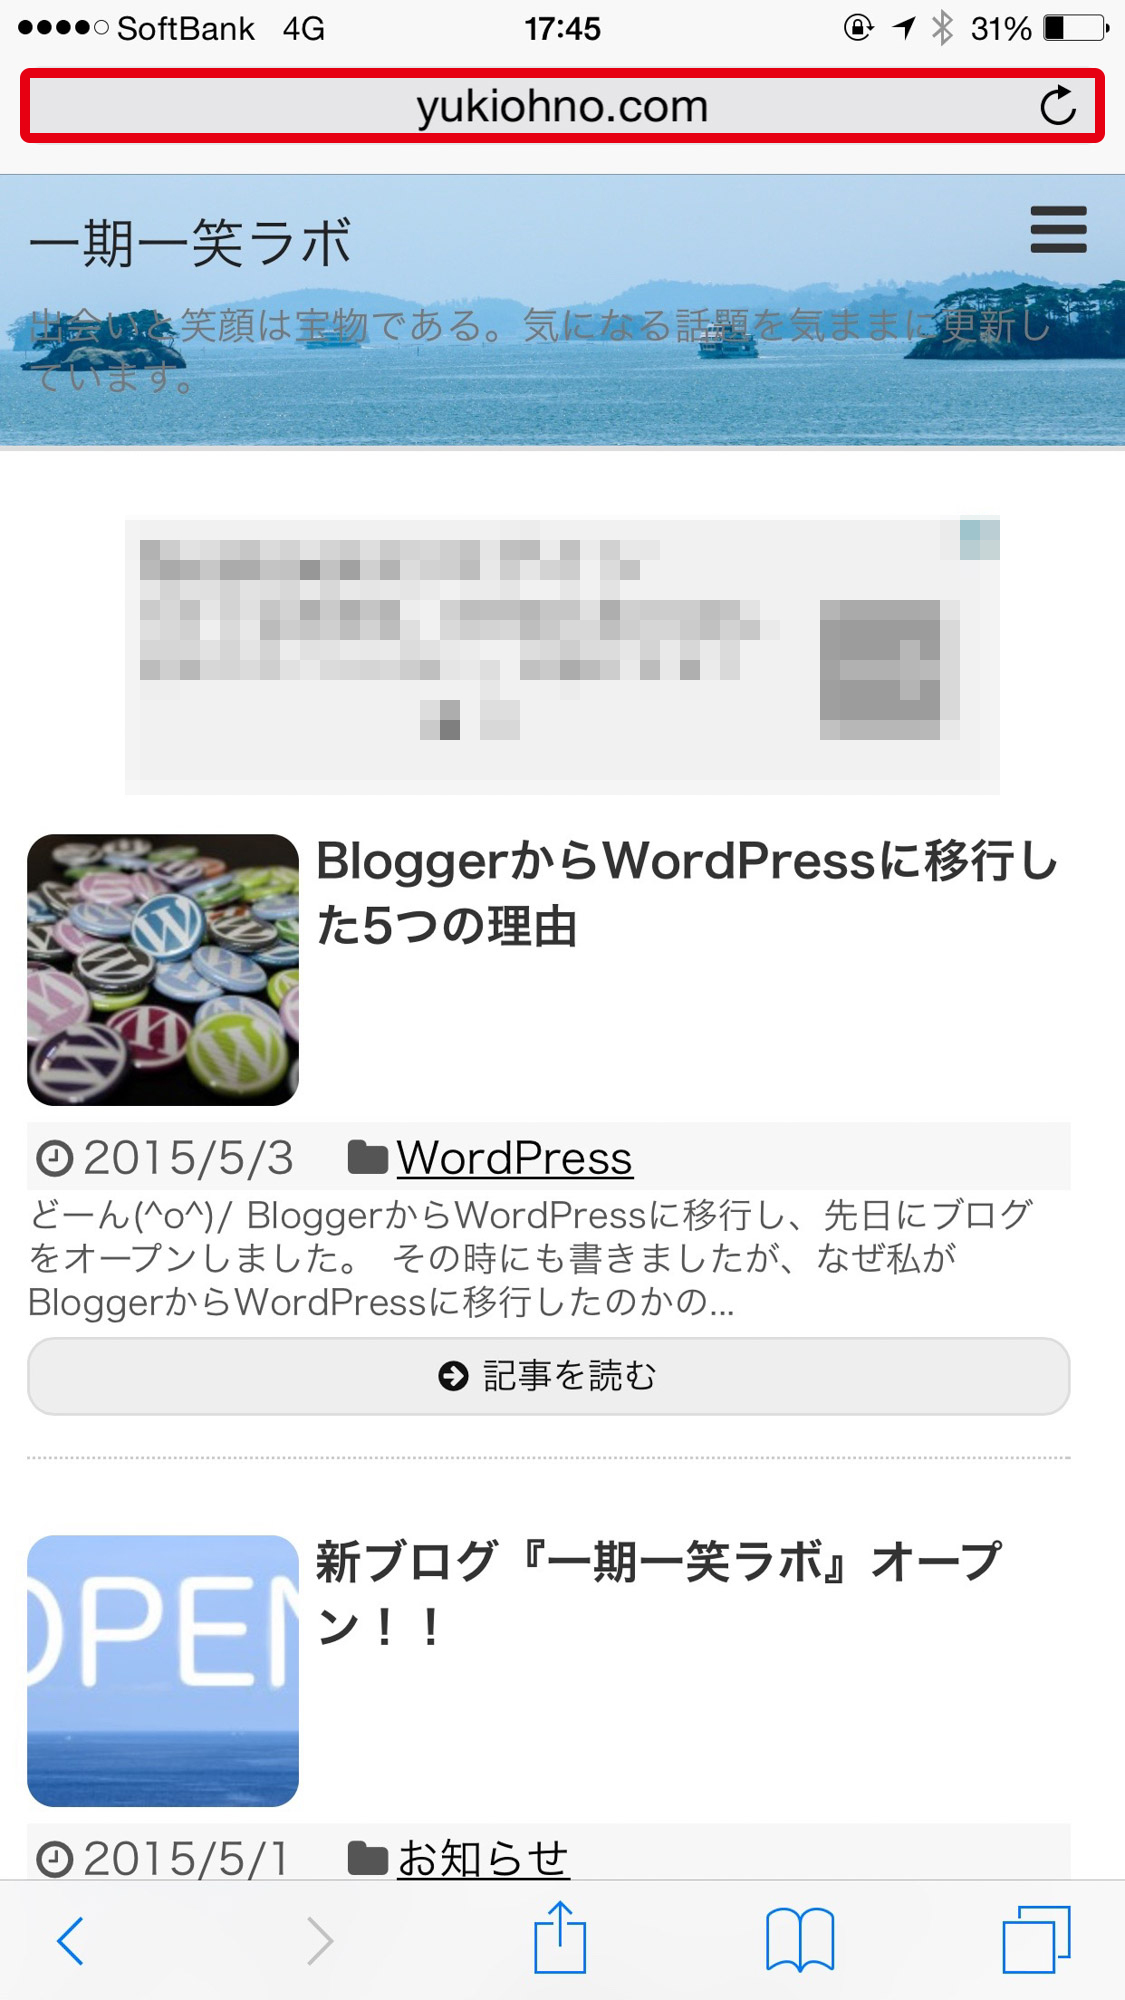 browser-wp-4245